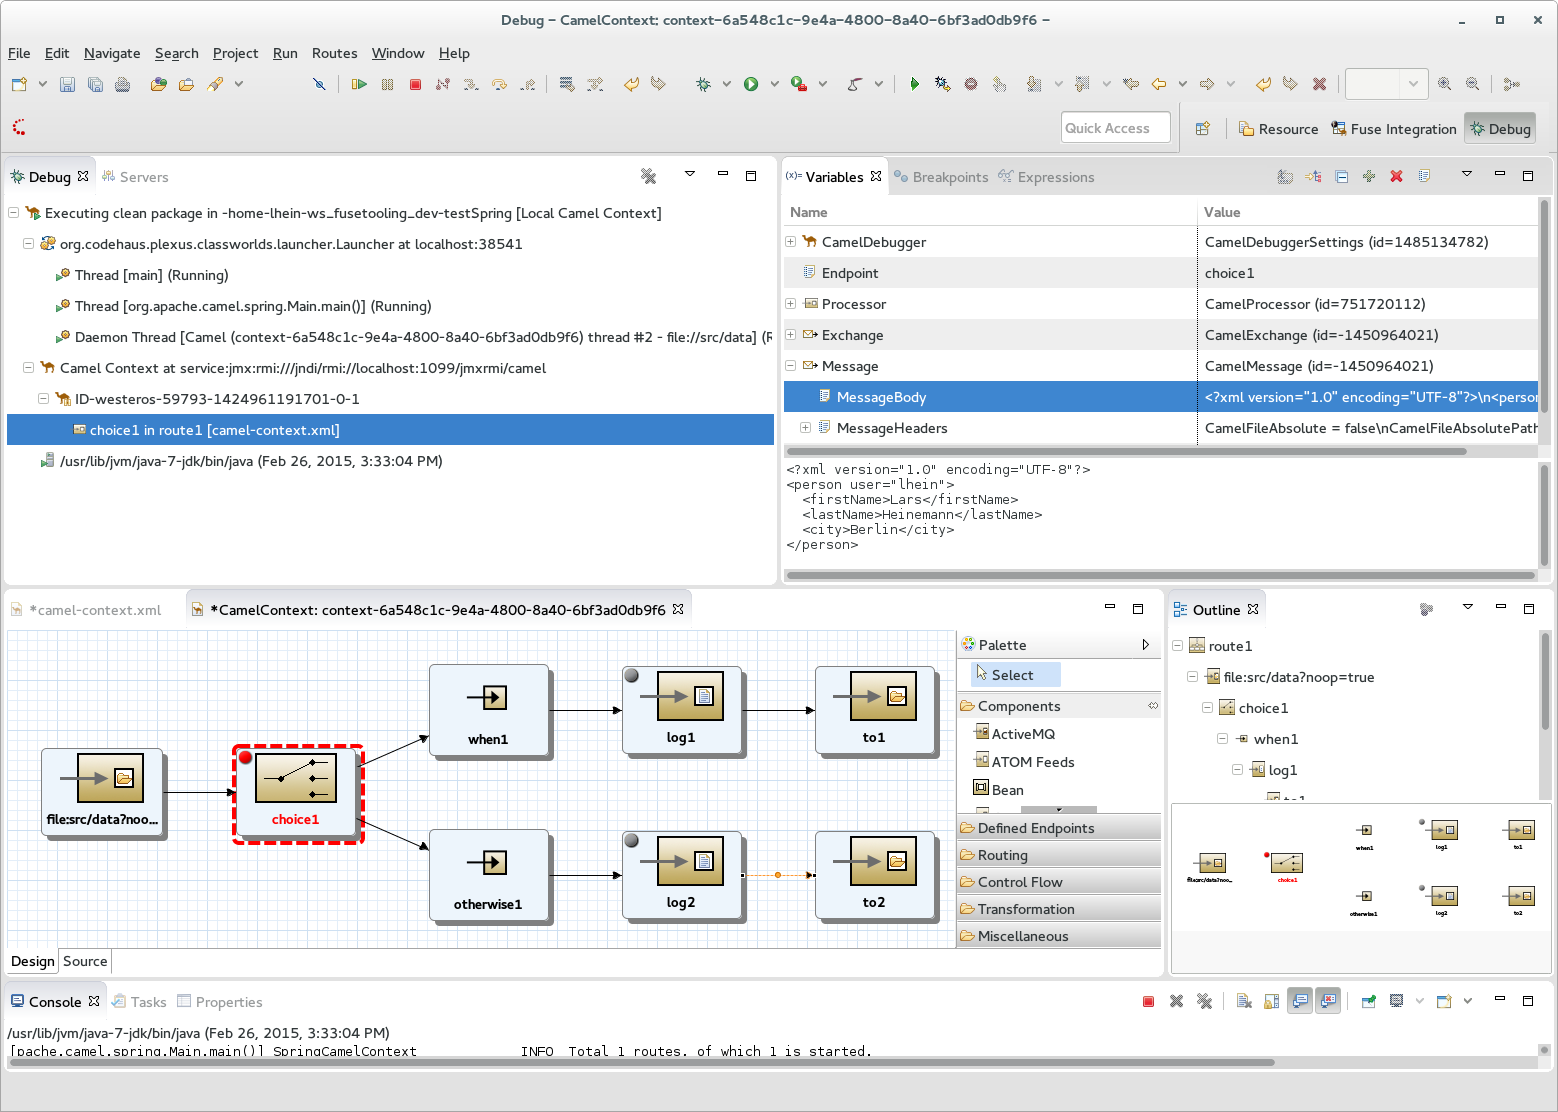 Jboss Tools Posts Tagged With Fuse Next Is The Itself I Will Include A Diagram Of Its Location In Debugger